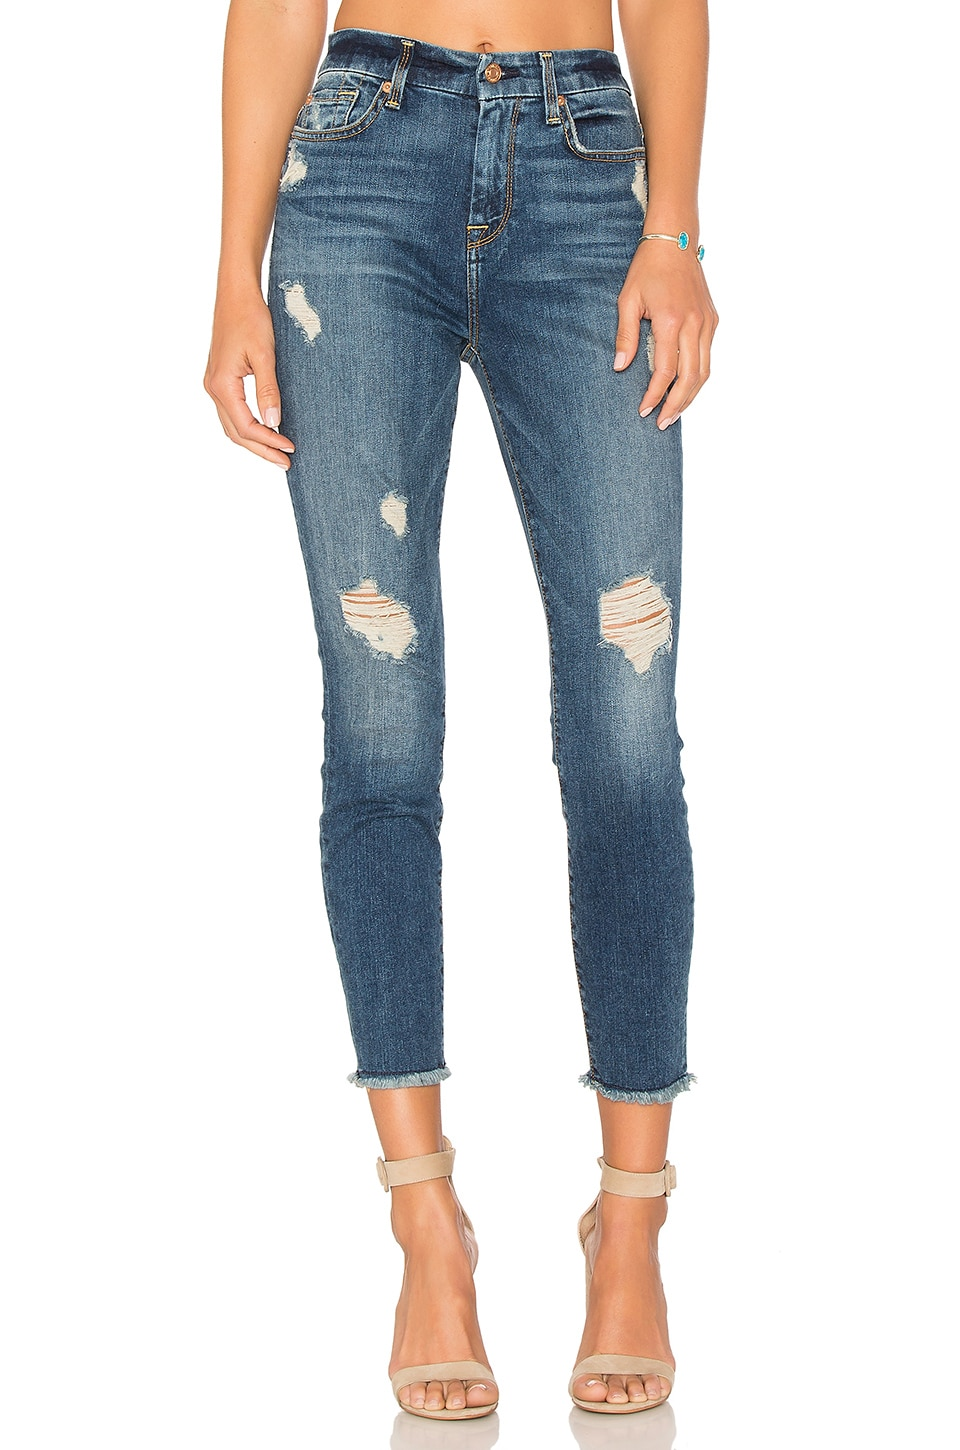 Photo of High Waist Ankle Skinny by 7 For All Mankind on sale